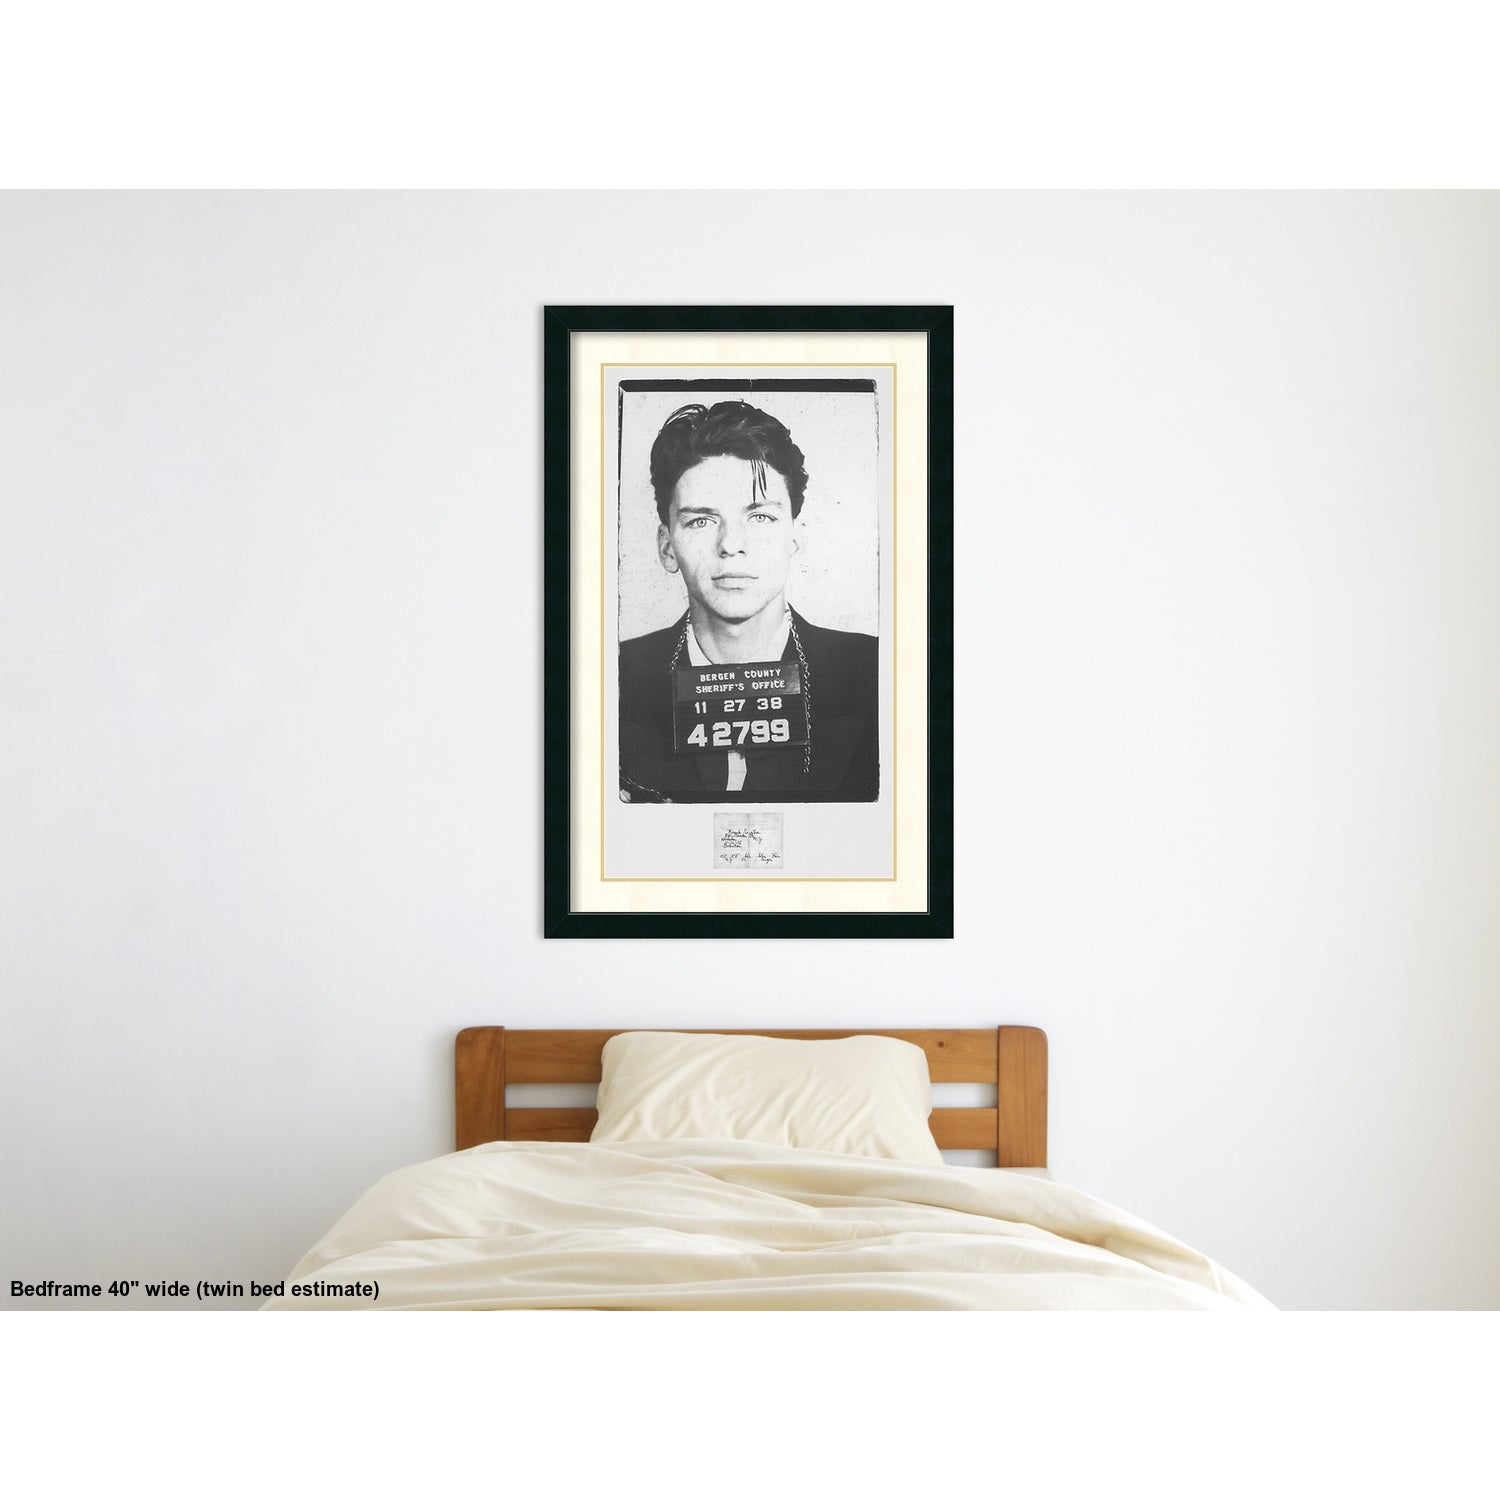 Framed art print frank sinatra mugshot 28 x 43 inch free framed art print frank sinatra mugshot 28 x 43 inch free shipping today overstock 16405619 jeuxipadfo Gallery